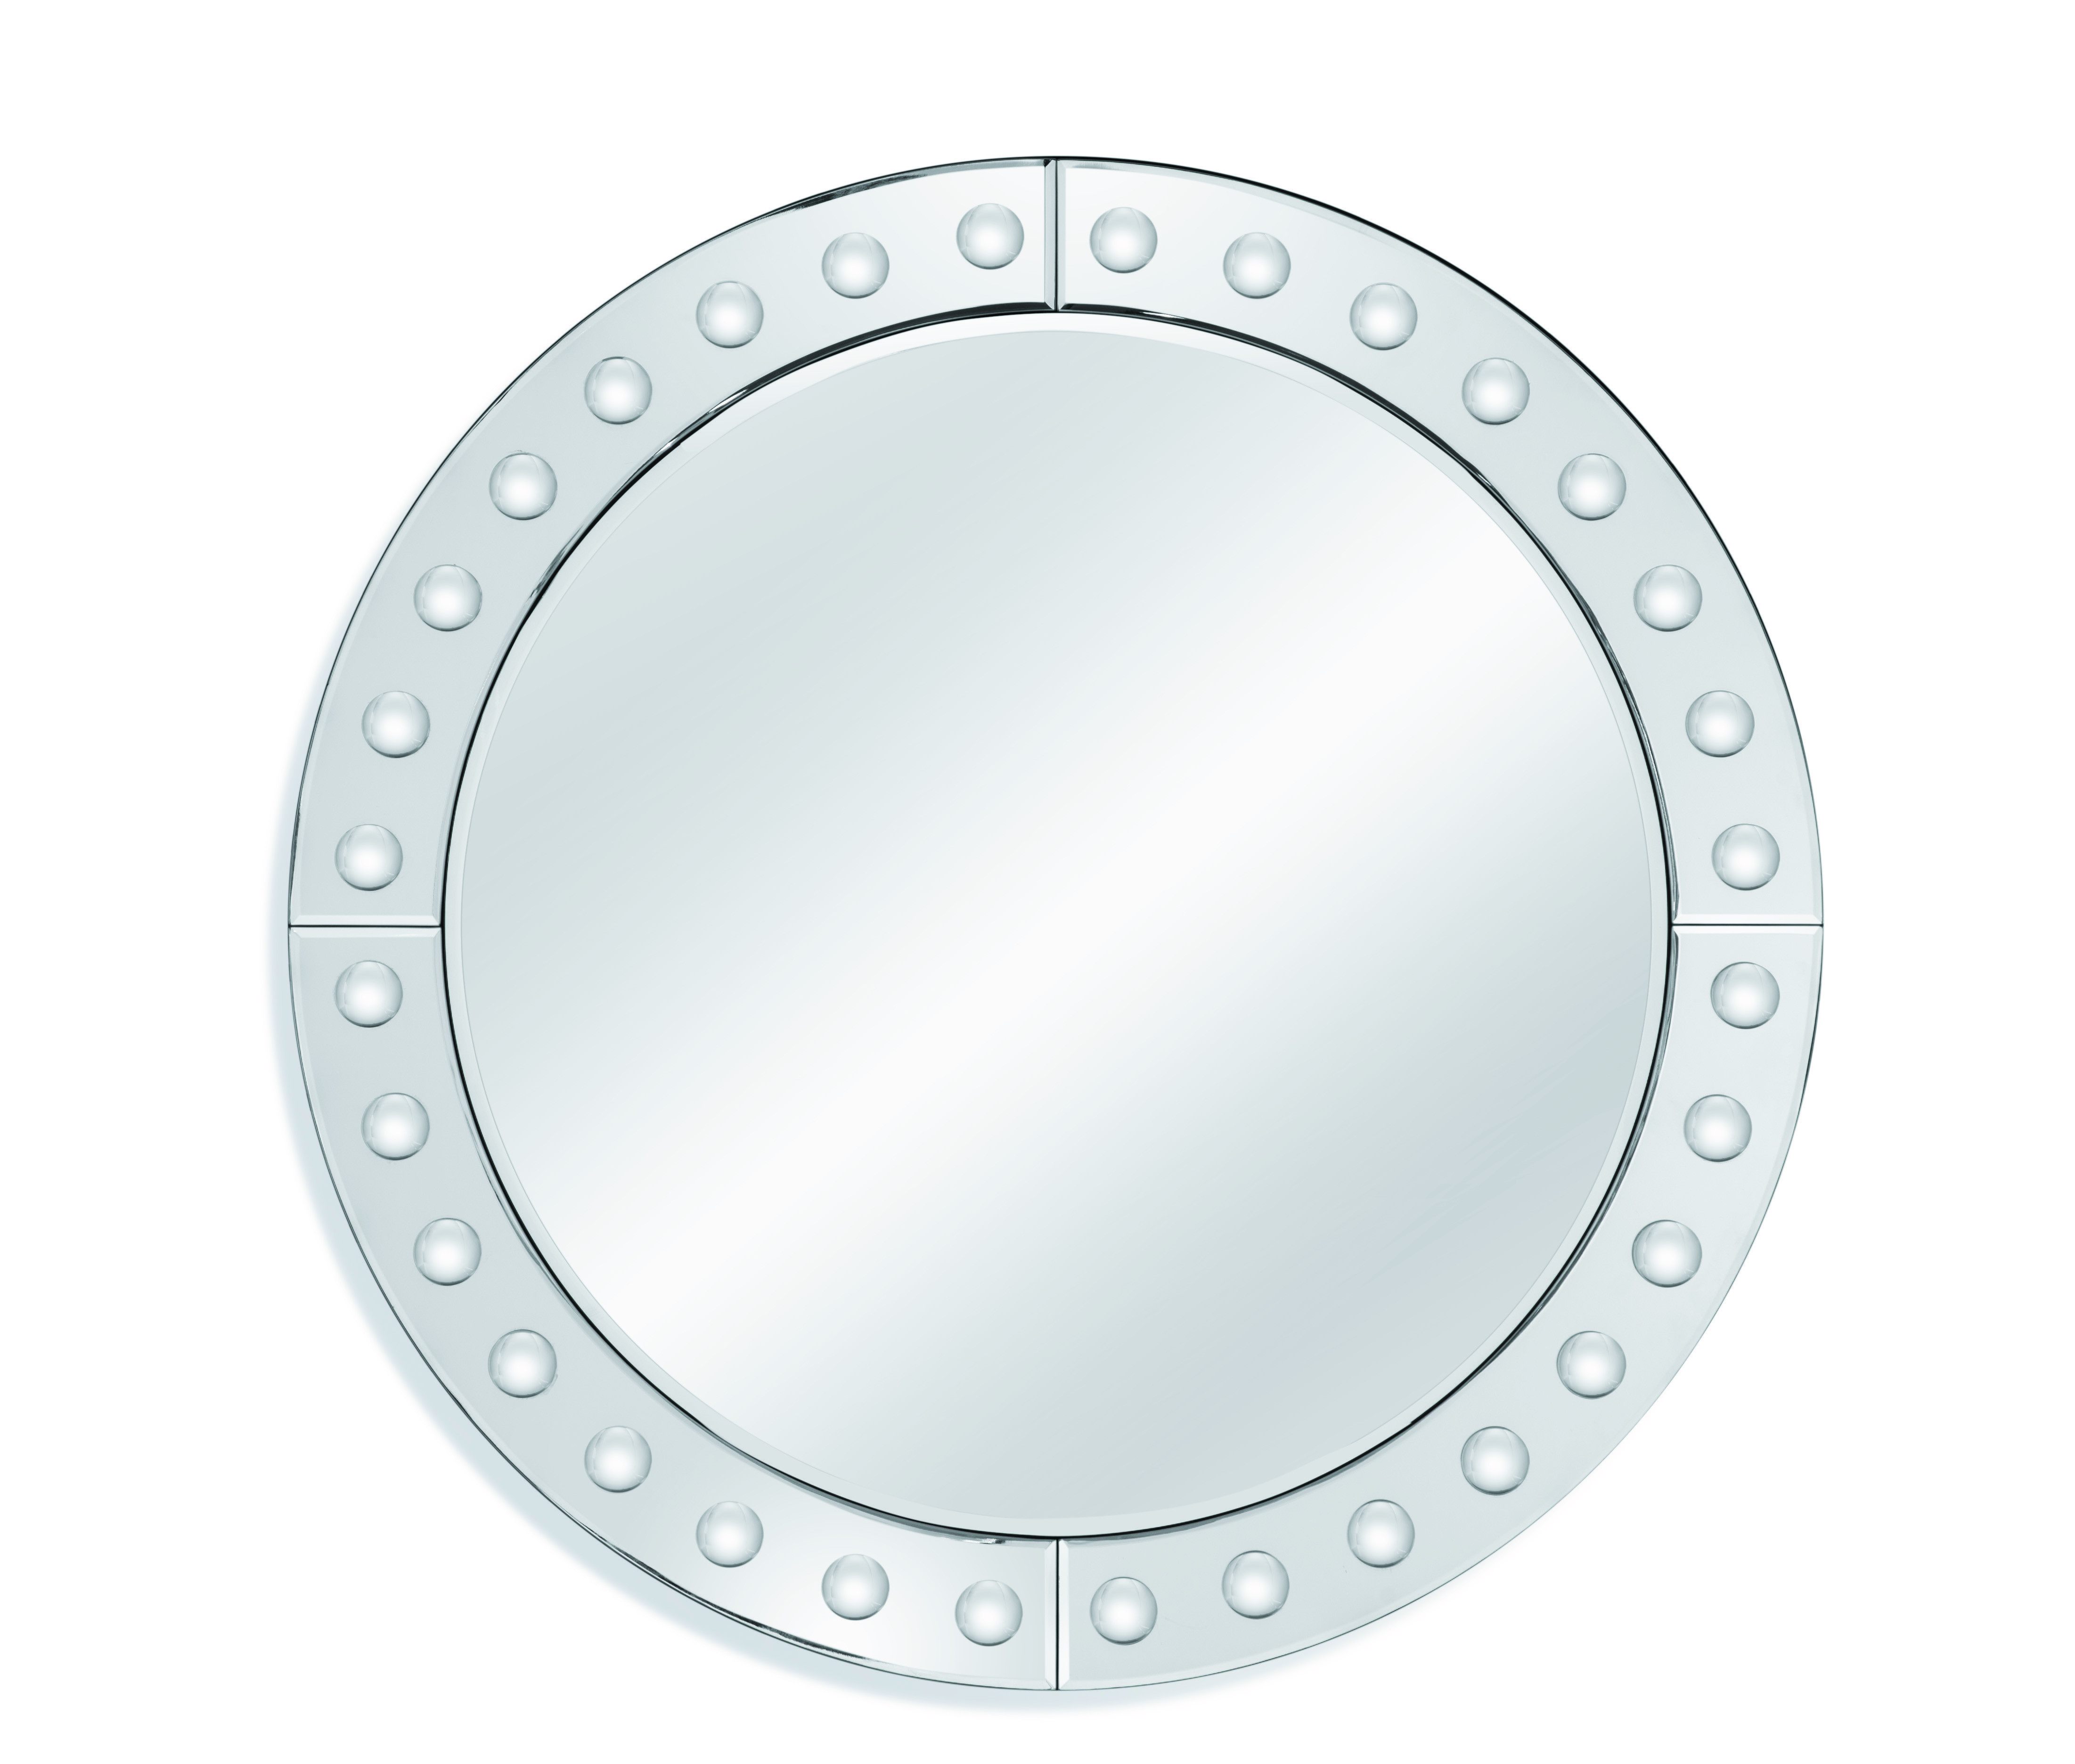 Calisse mirror in silver from Bassett Mirror Company